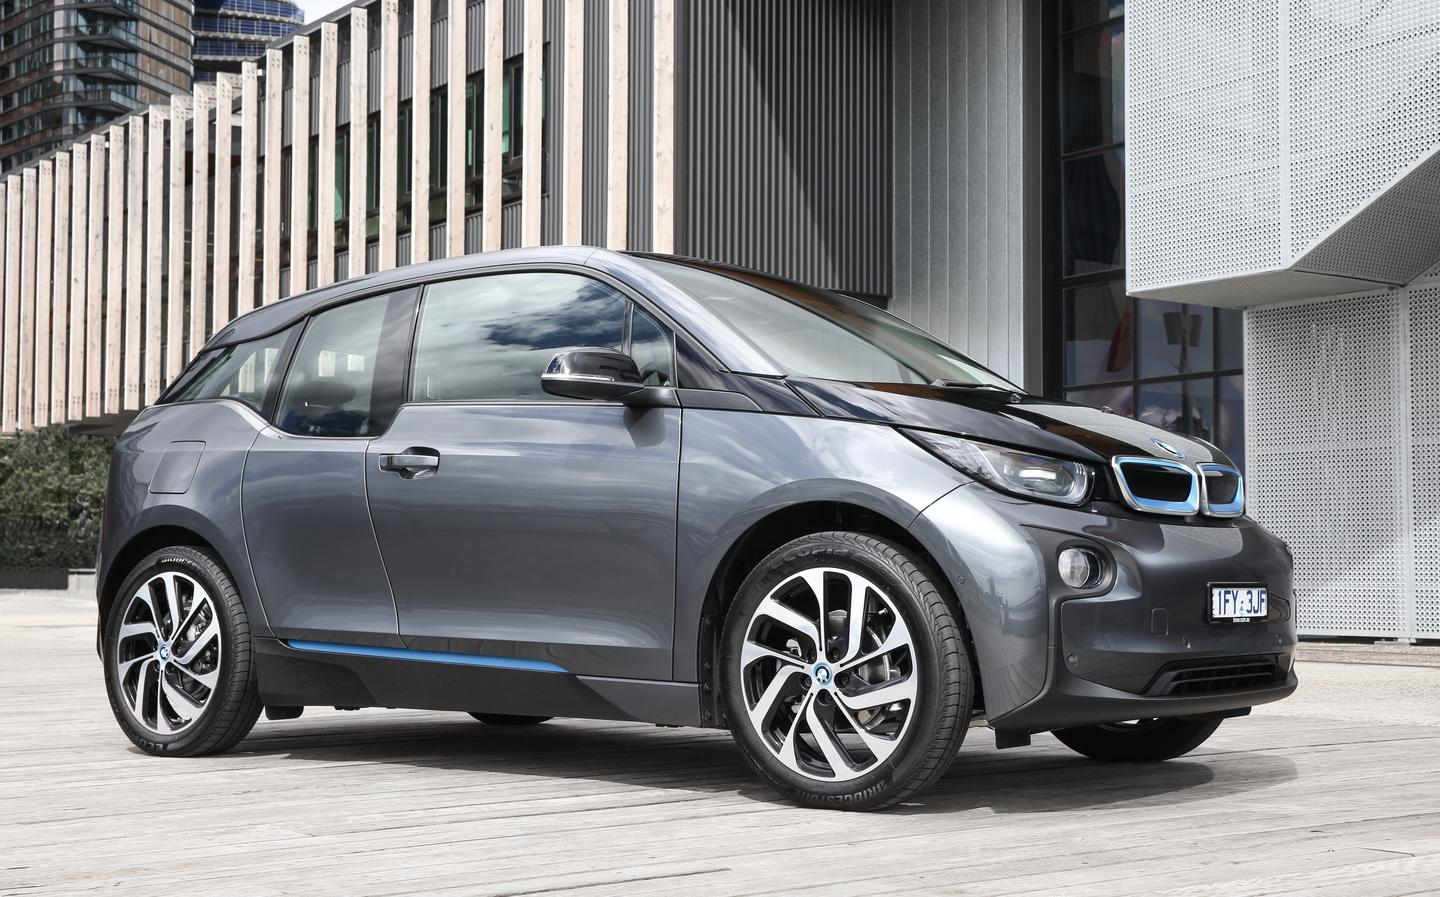 BMW i3 (94 Ah): a200 km range represents well over a week of commuting to and from work for most people